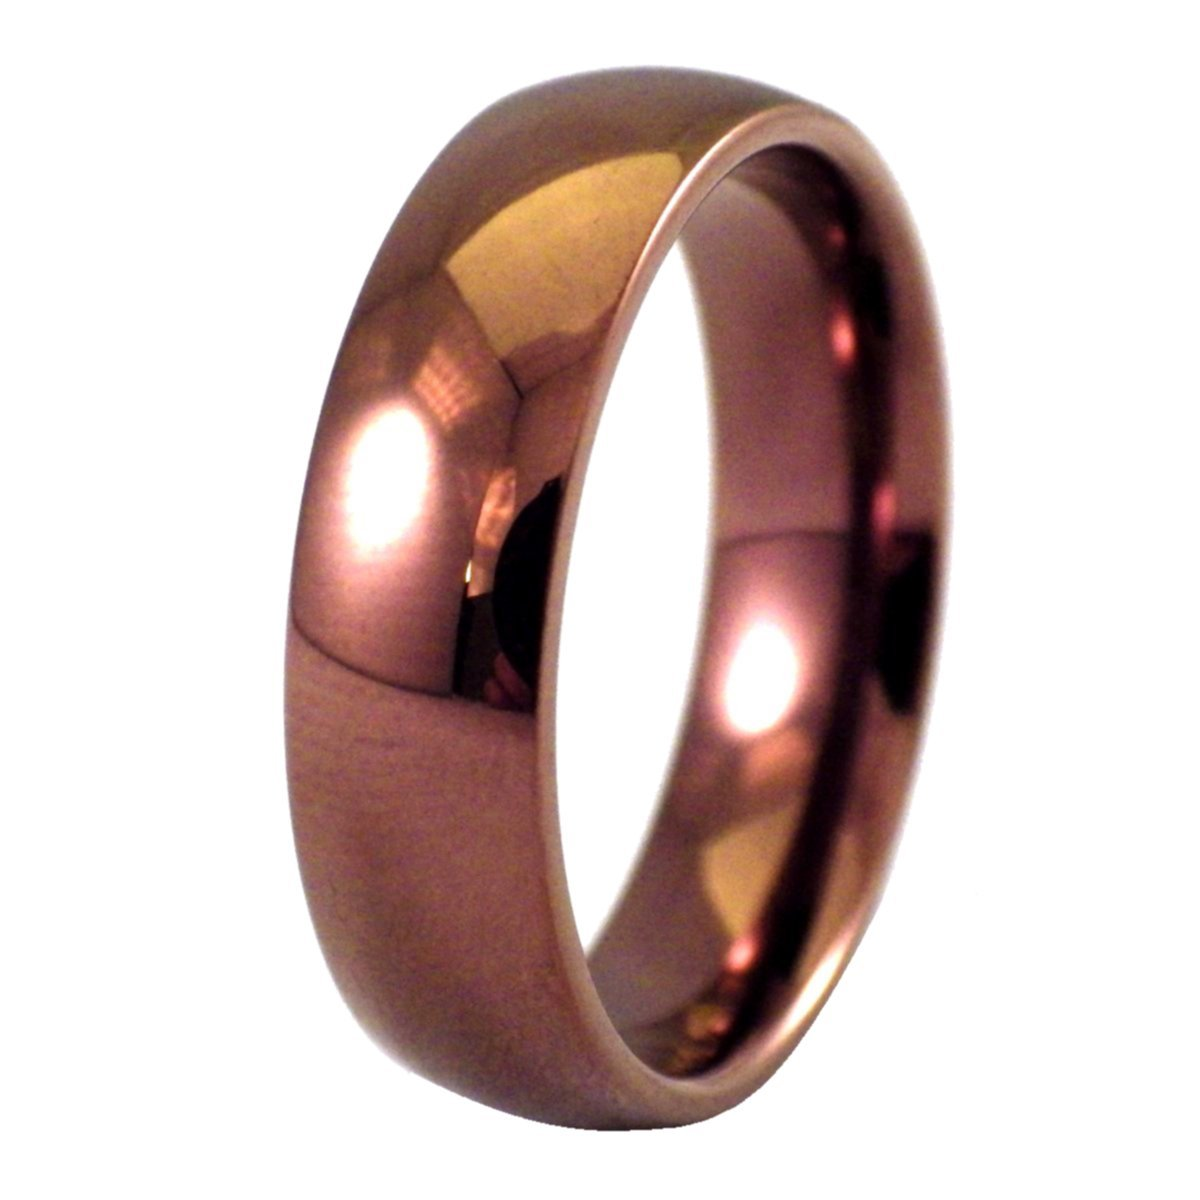 Fantasy Forge Jewelry Coffee Color Ring Simple Copper Stainless Steel Wedding Band Size 12